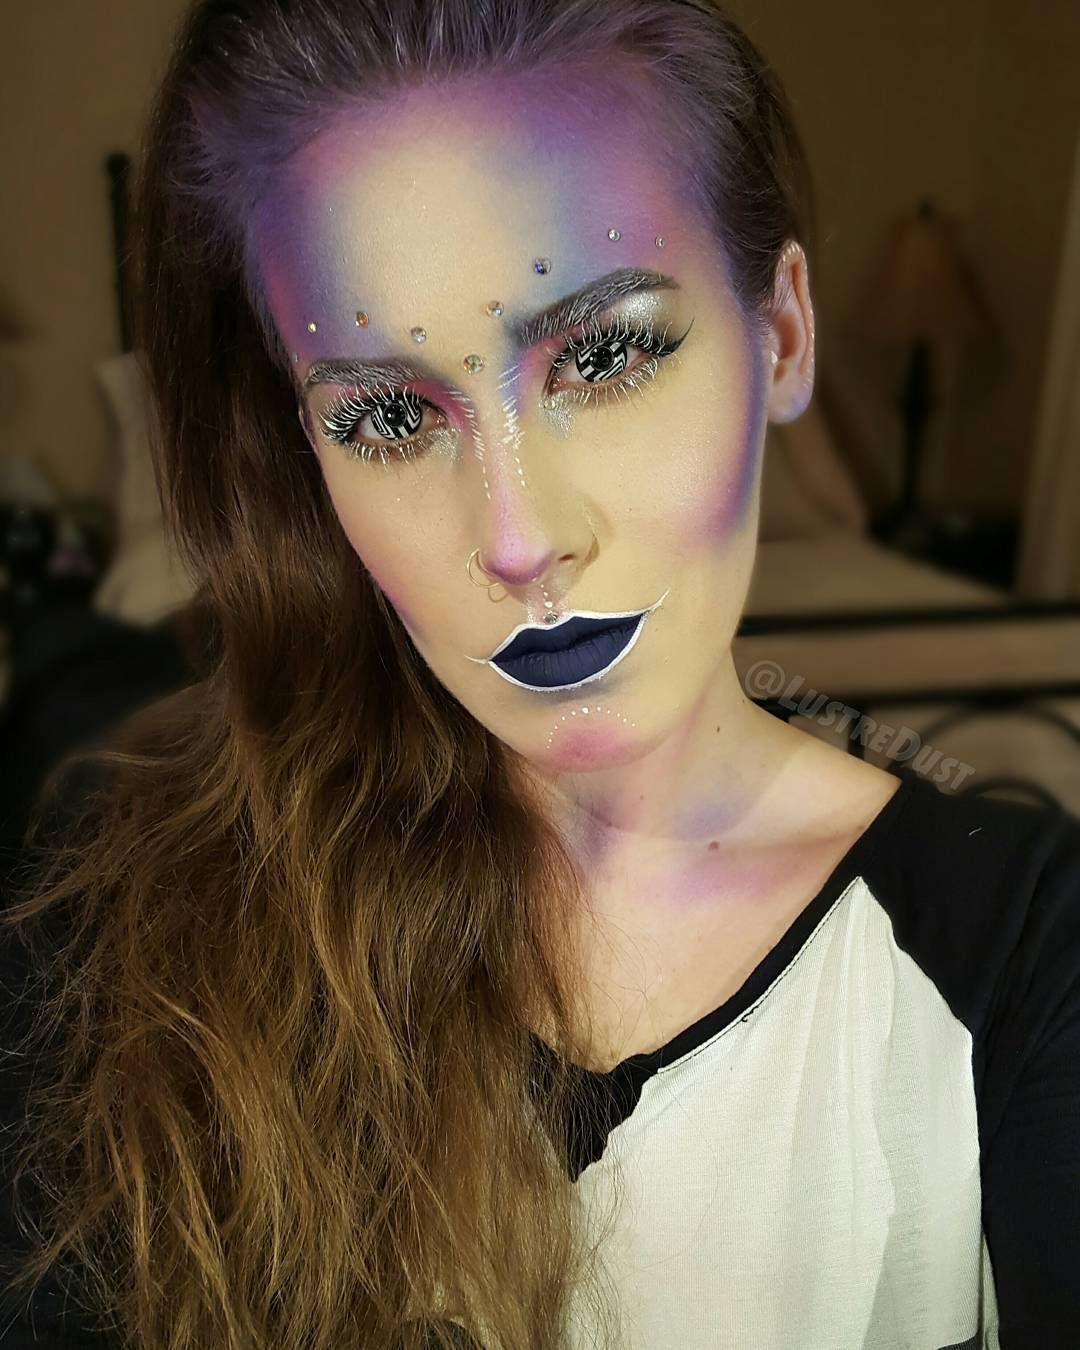 Day 1/100 days of makeup! Here's my first look for this